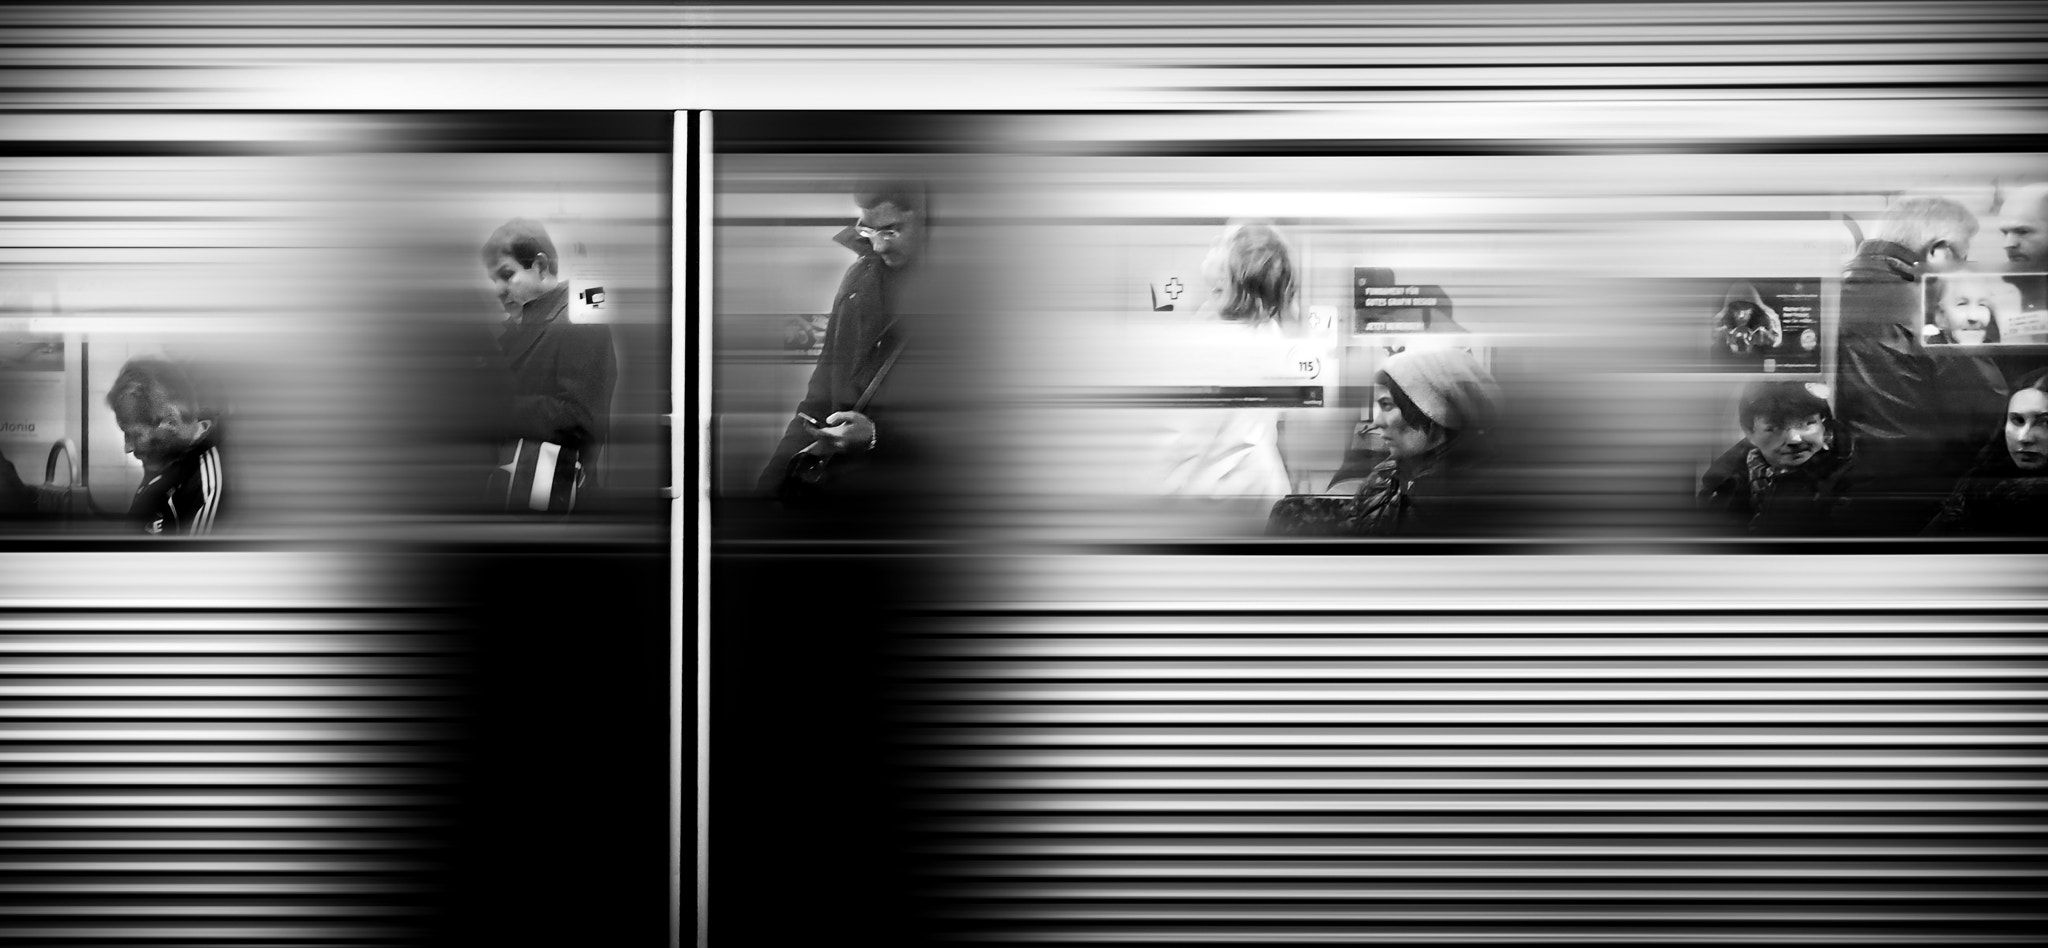 Photograph In the TRAIN by Kai Nicolas  Schaper on 500px